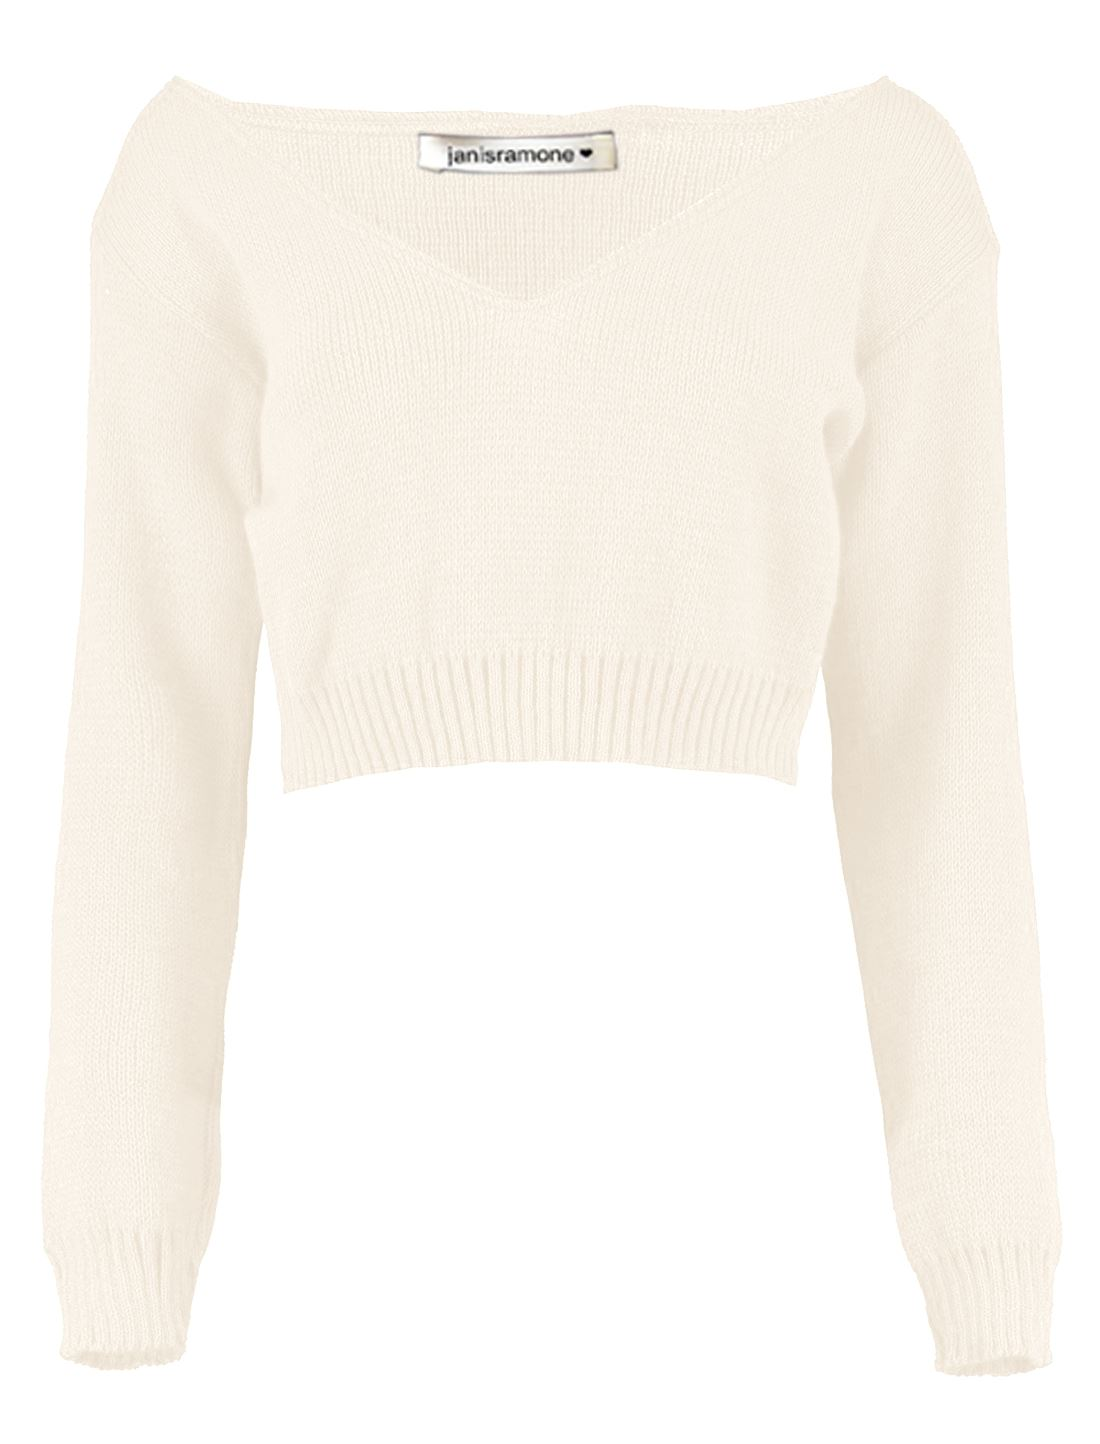 New-Womens-Off-Shoulder-V-Neck-Knitted-Cropped-Long-Sleeve-Jumper-Warm-Sweater miniatura 7